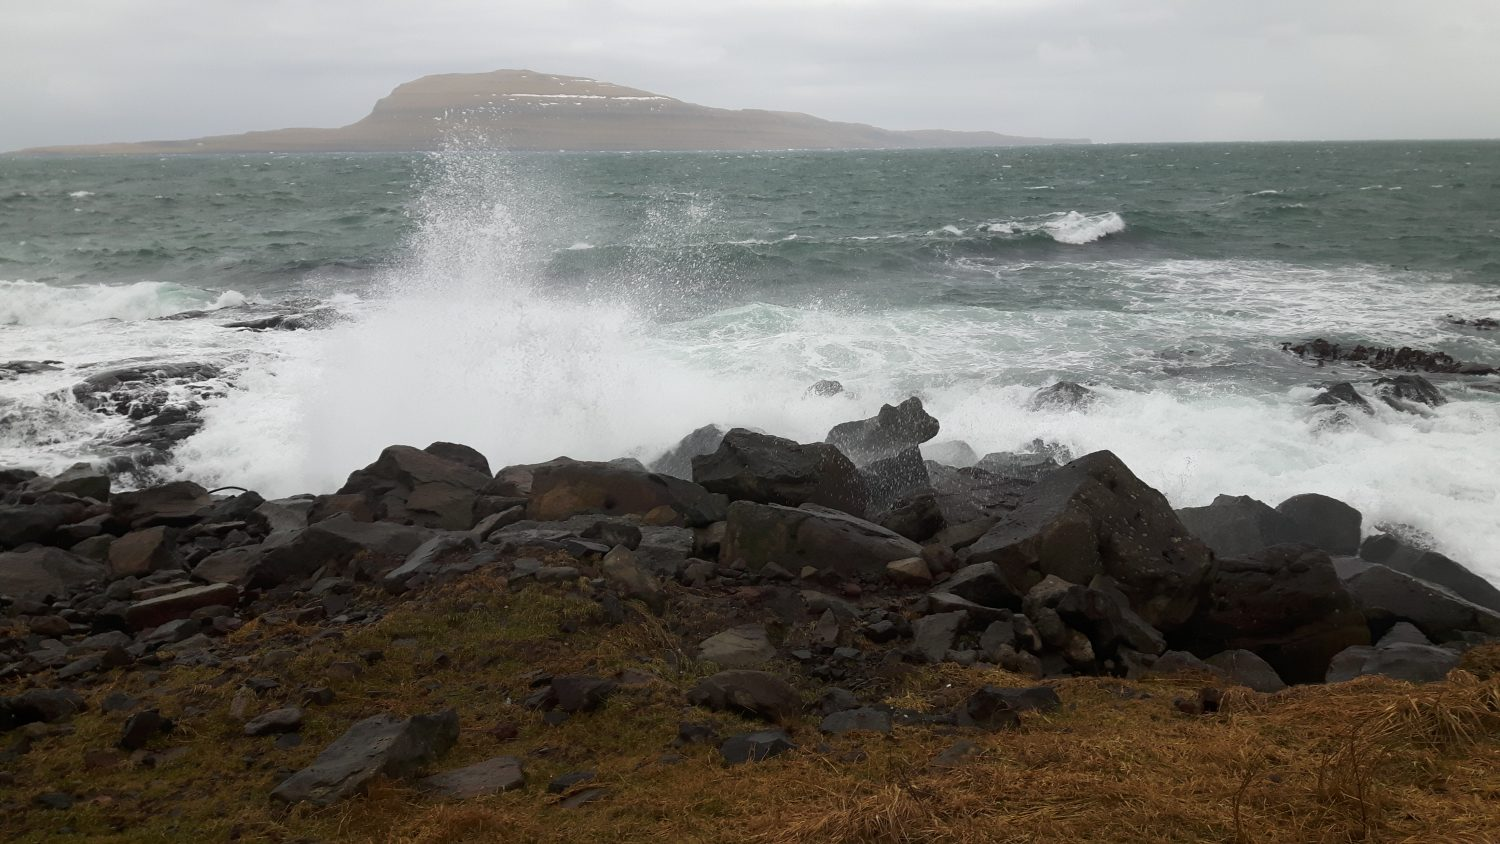 A picture of what Andreas Bennetzen saw recording the sound of the atlantic ocean on Faroe Islands for his upcoming album The Vibration